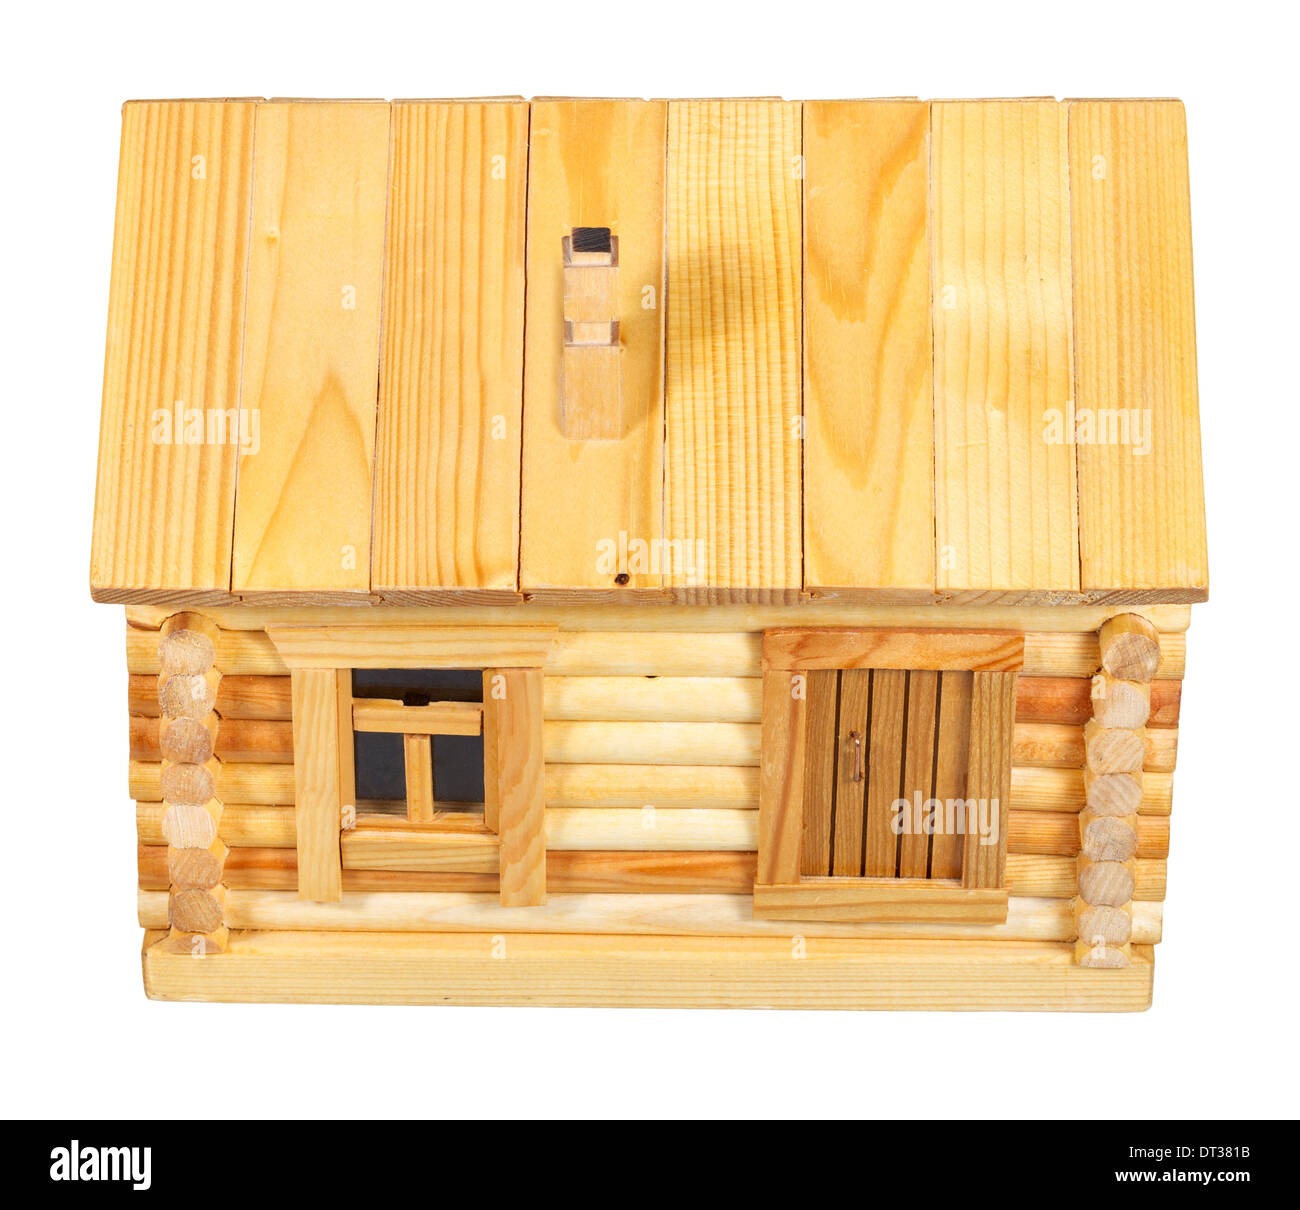 above view of facade of model of simple village wooden log house isolated on white background - Stock Image